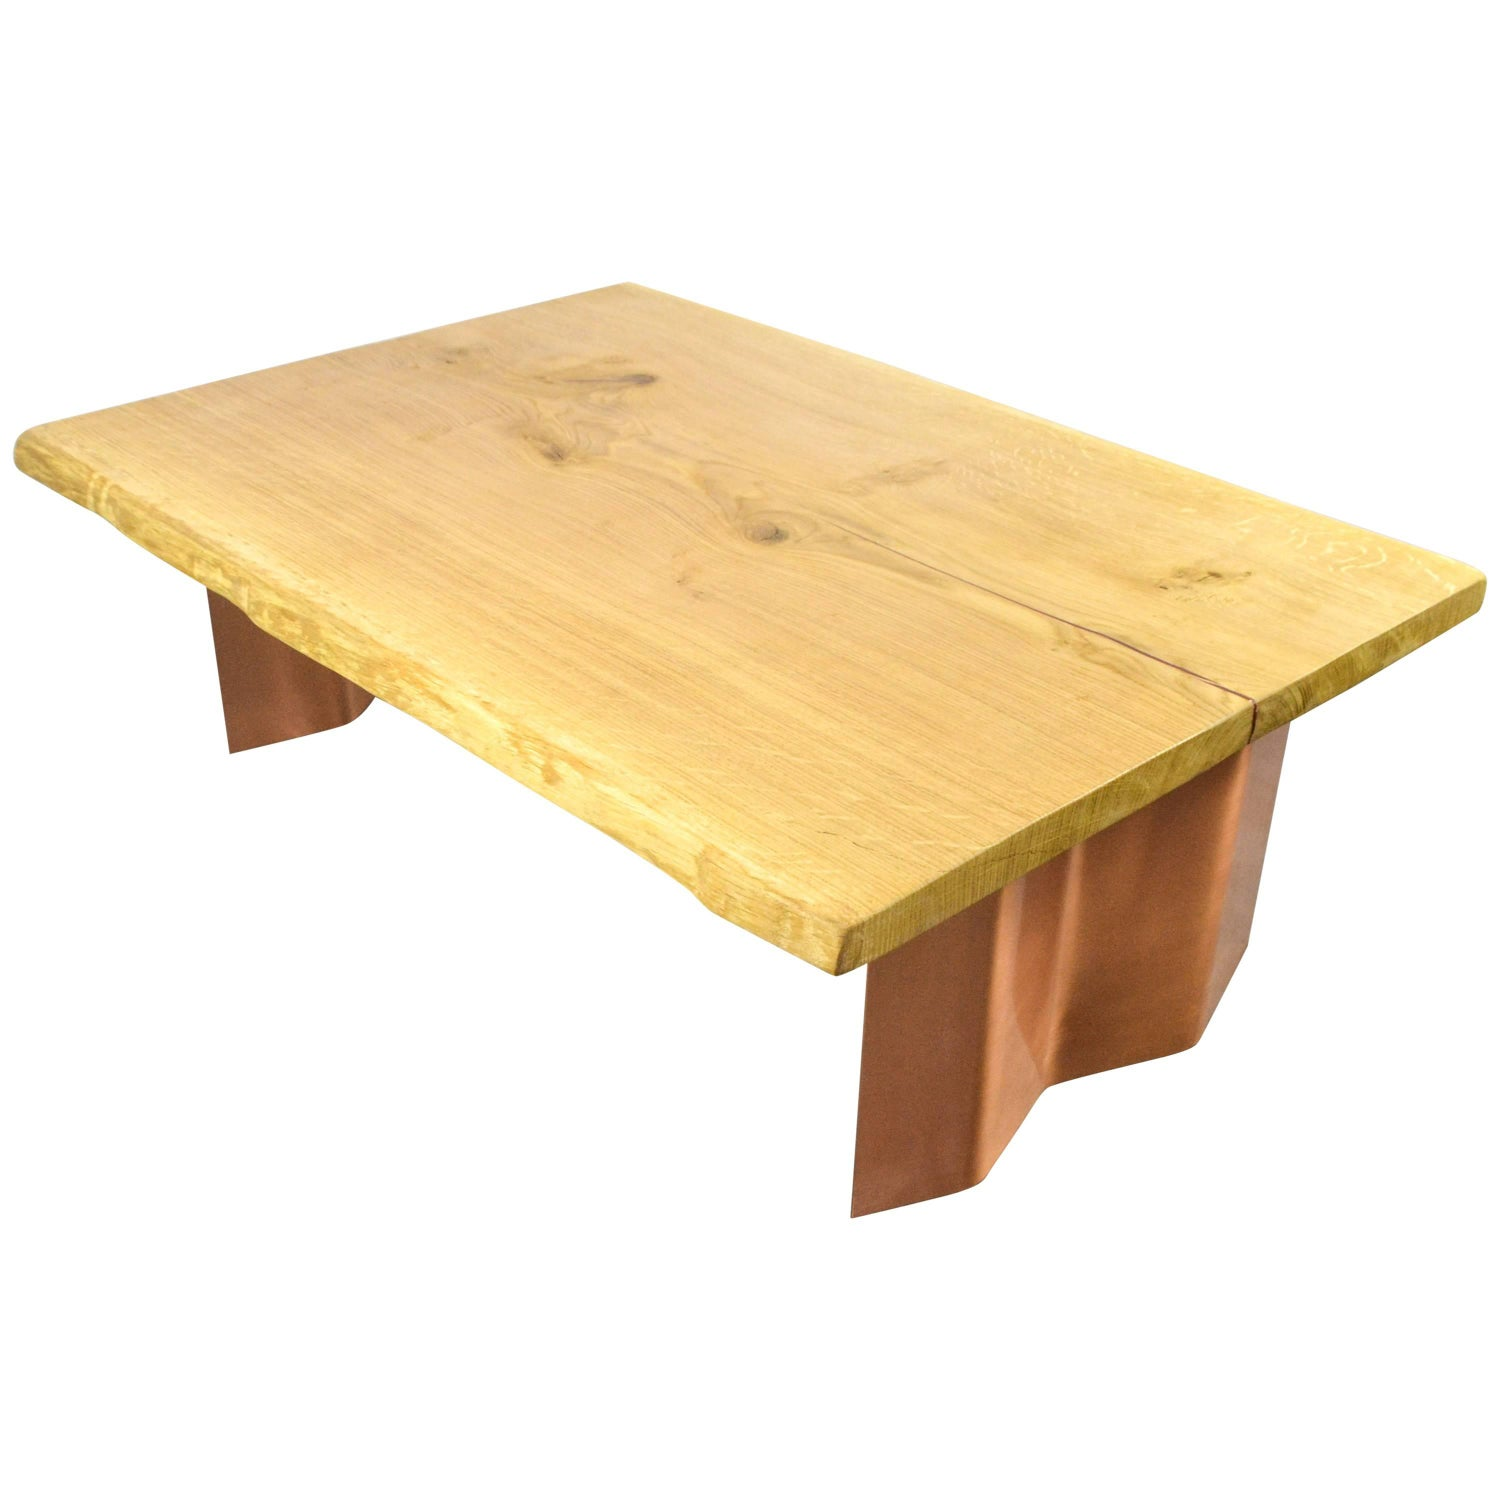 Sentient Folded Maple Slab Live Edge Coffee Table with Driftwood